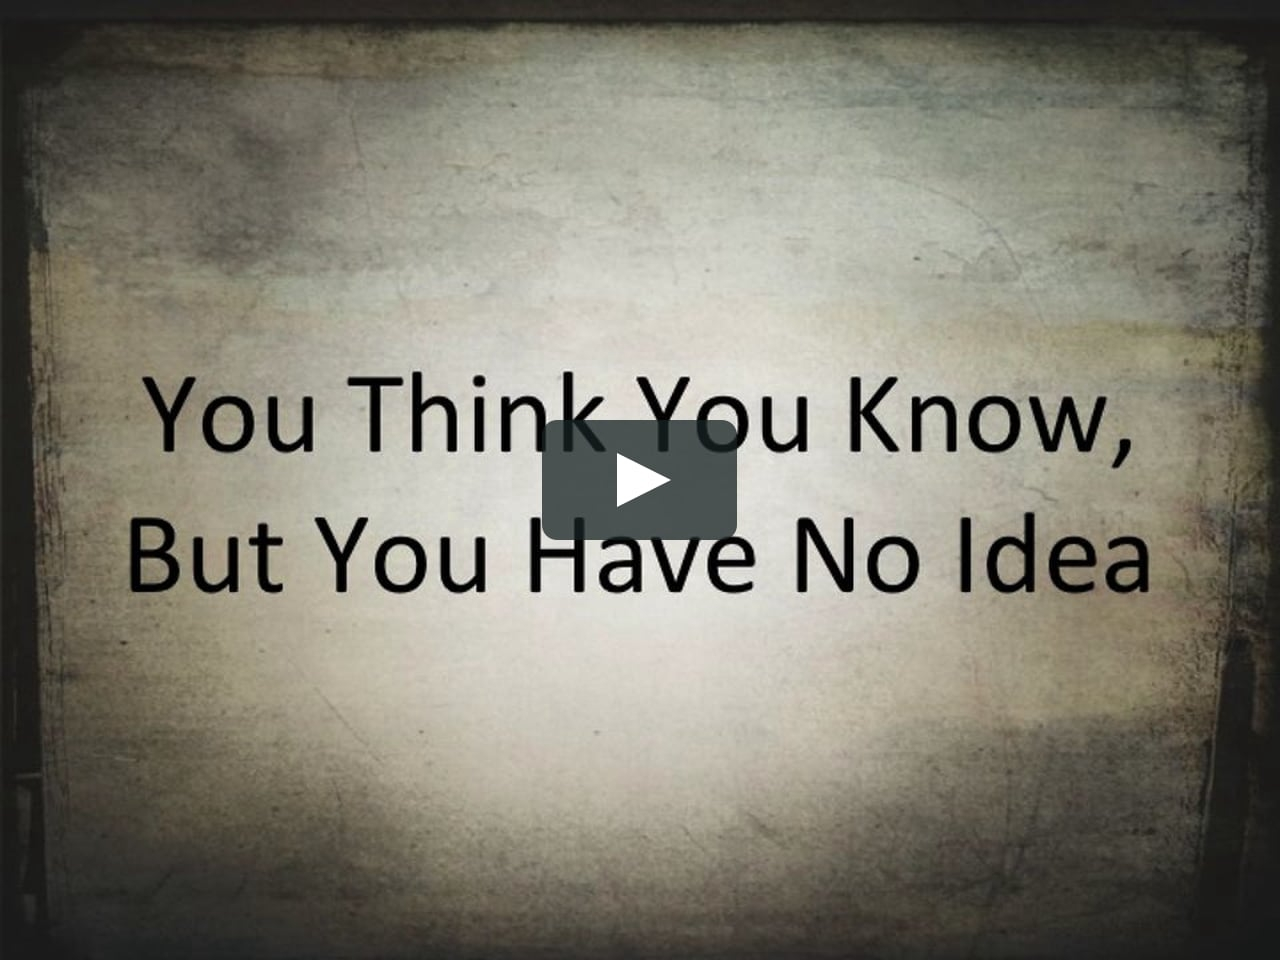 you think you know, but you have no idea on vimeo